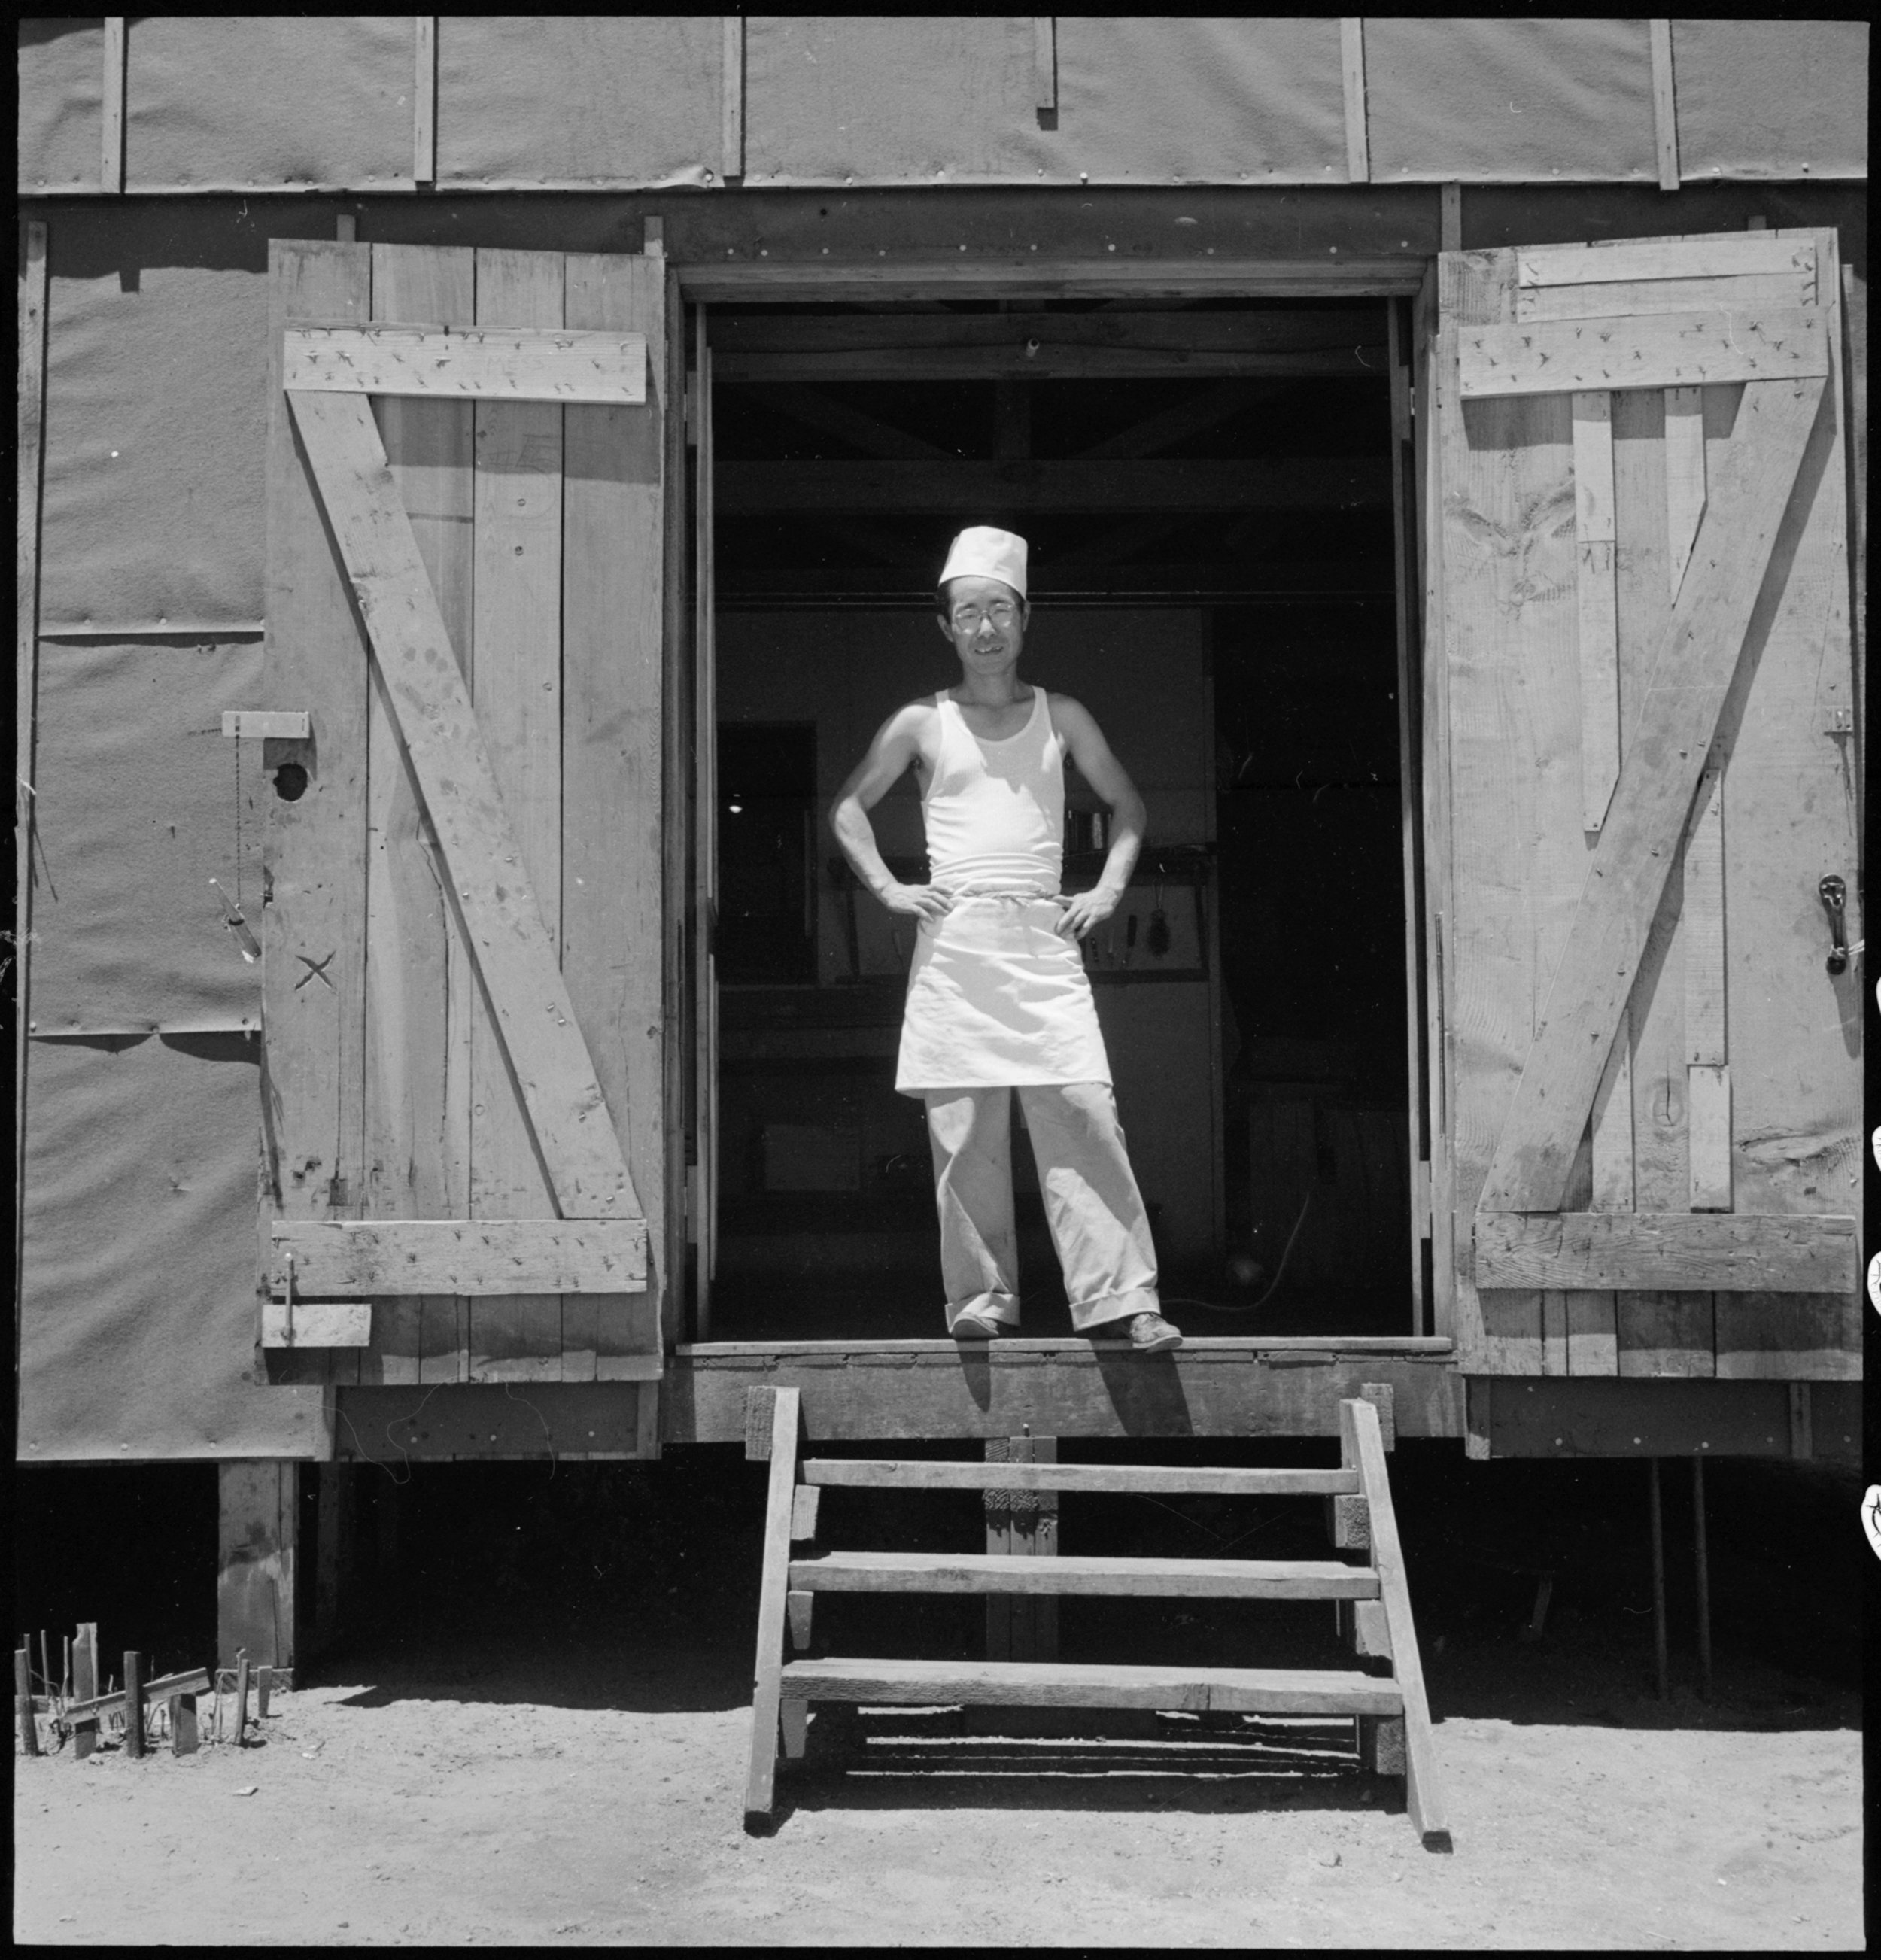 July 2, 1942 — Manzanar Relocation Center, Manzanar, California. A chef of Japanese ancestry at this War Relocation Authority center. Evacuees find opportunities to follow their callings.